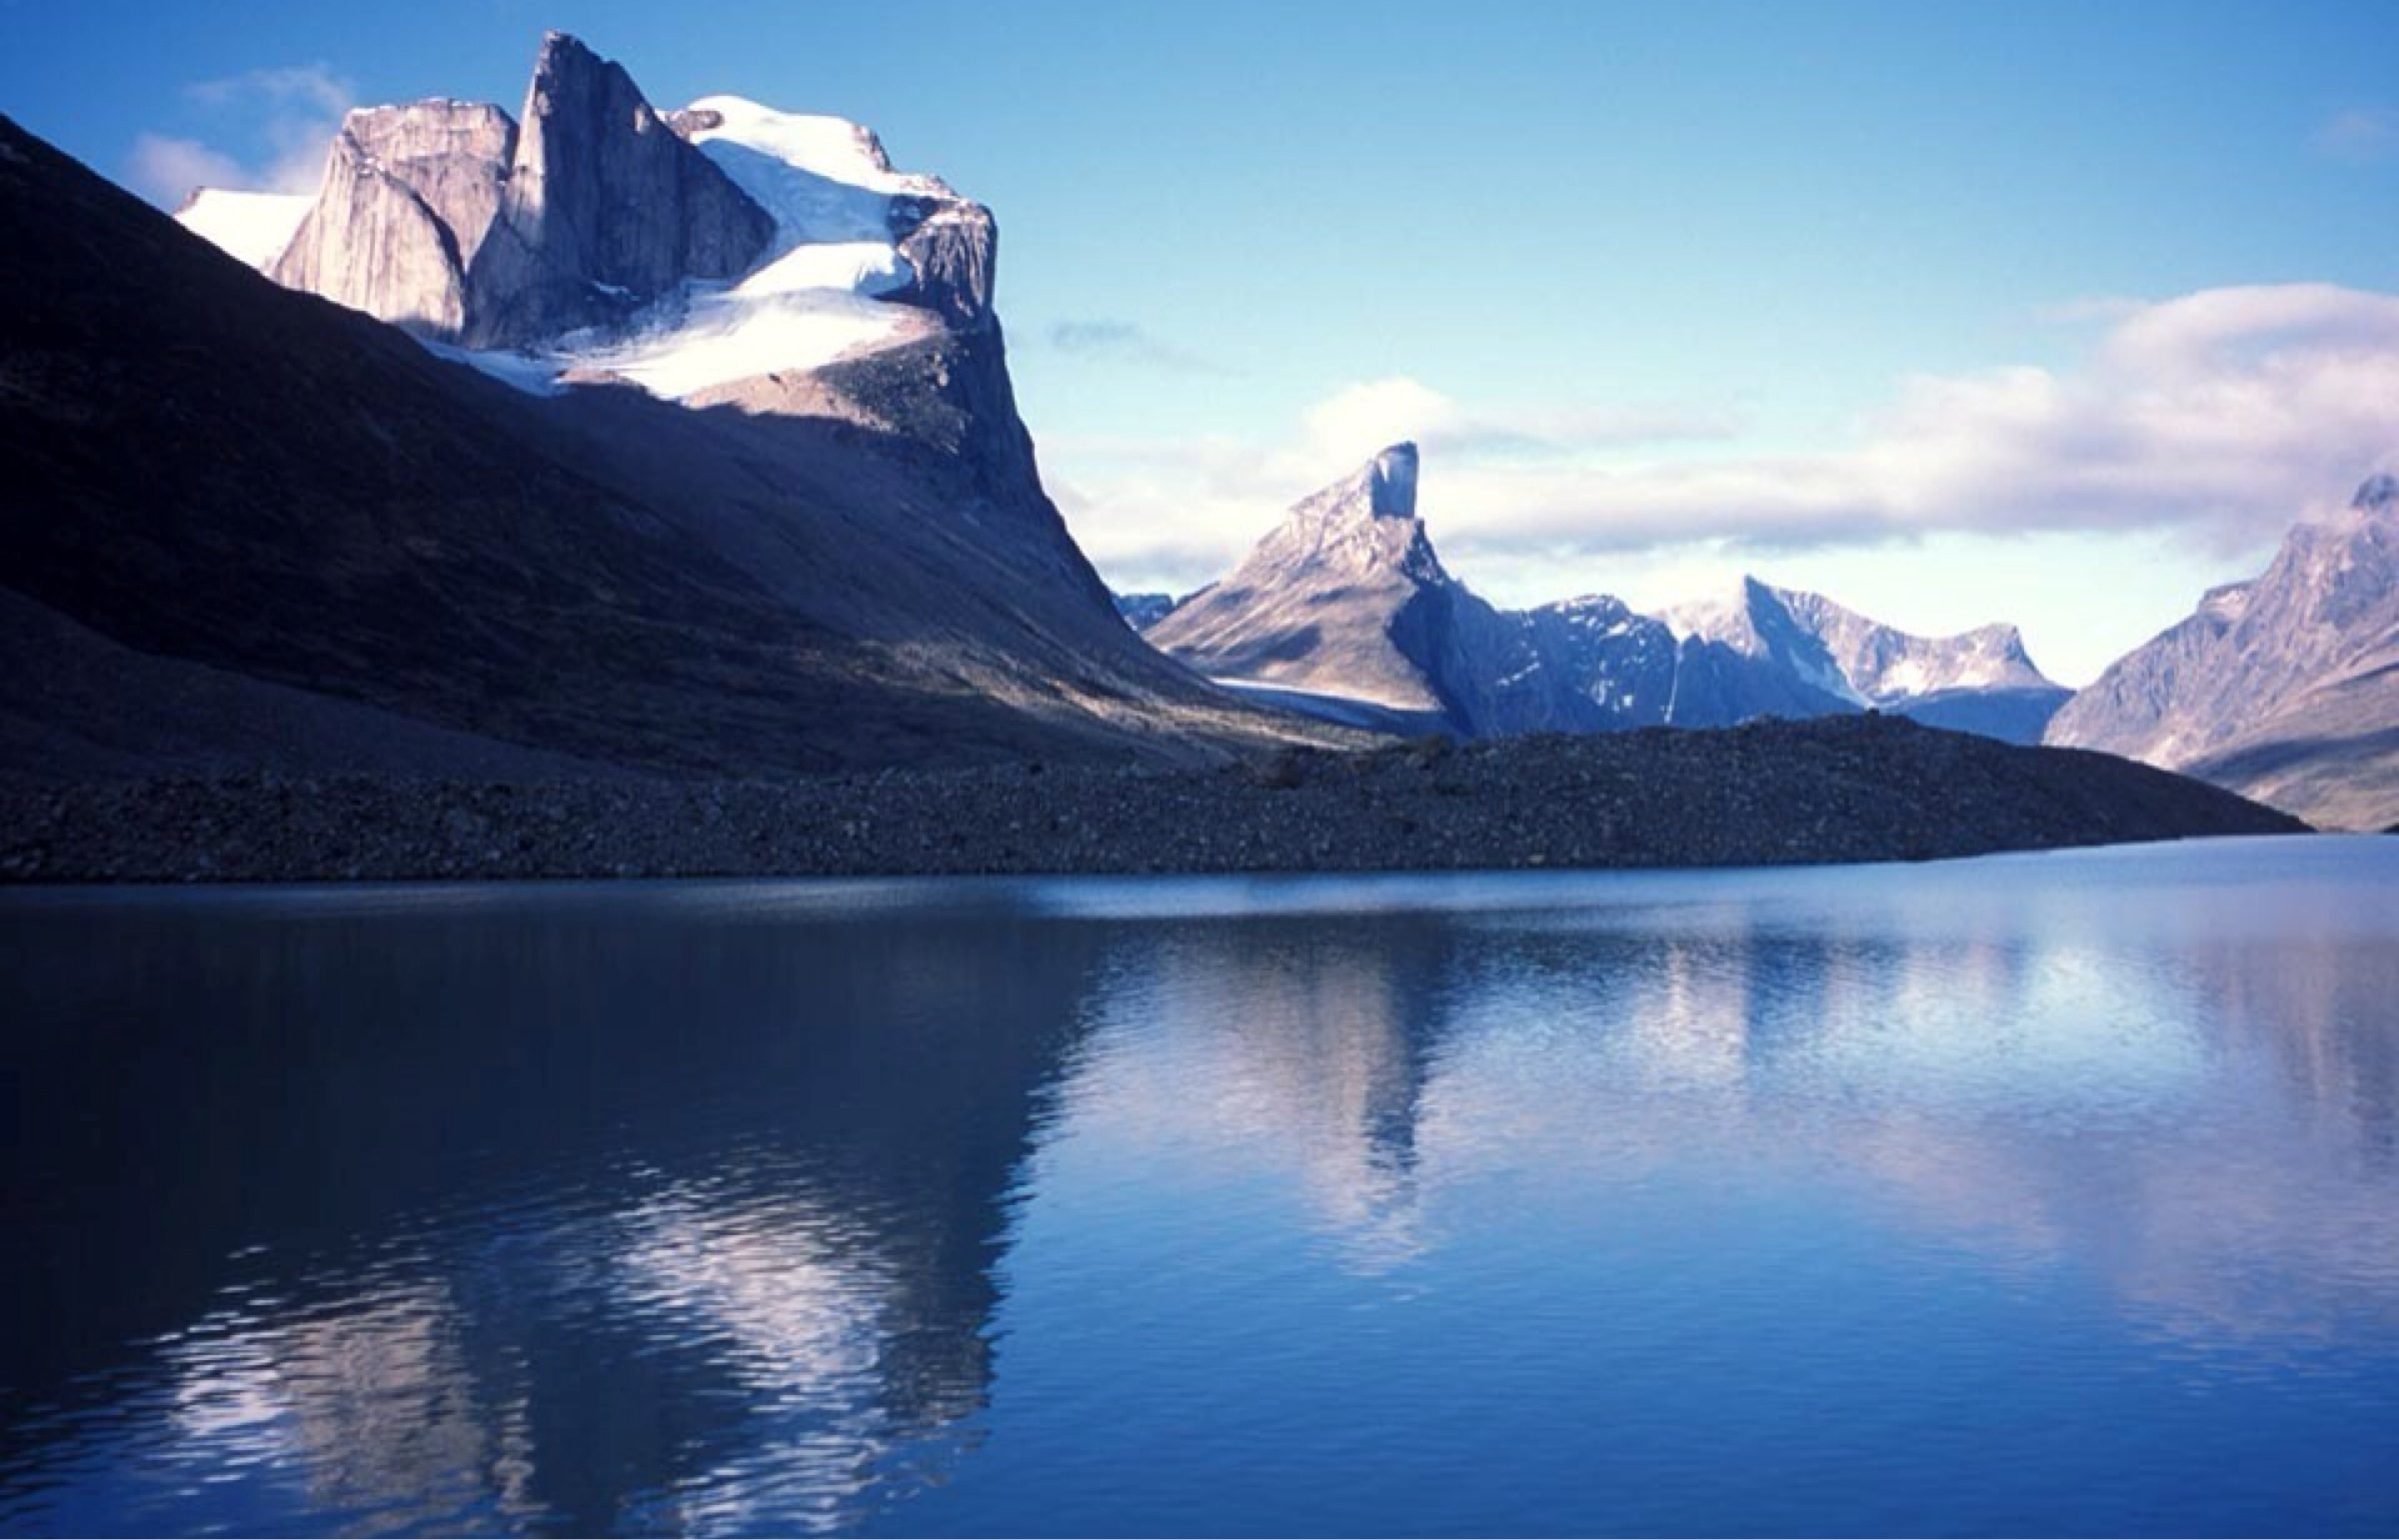 Baffin Island The Largest Island In Canada And Fifth